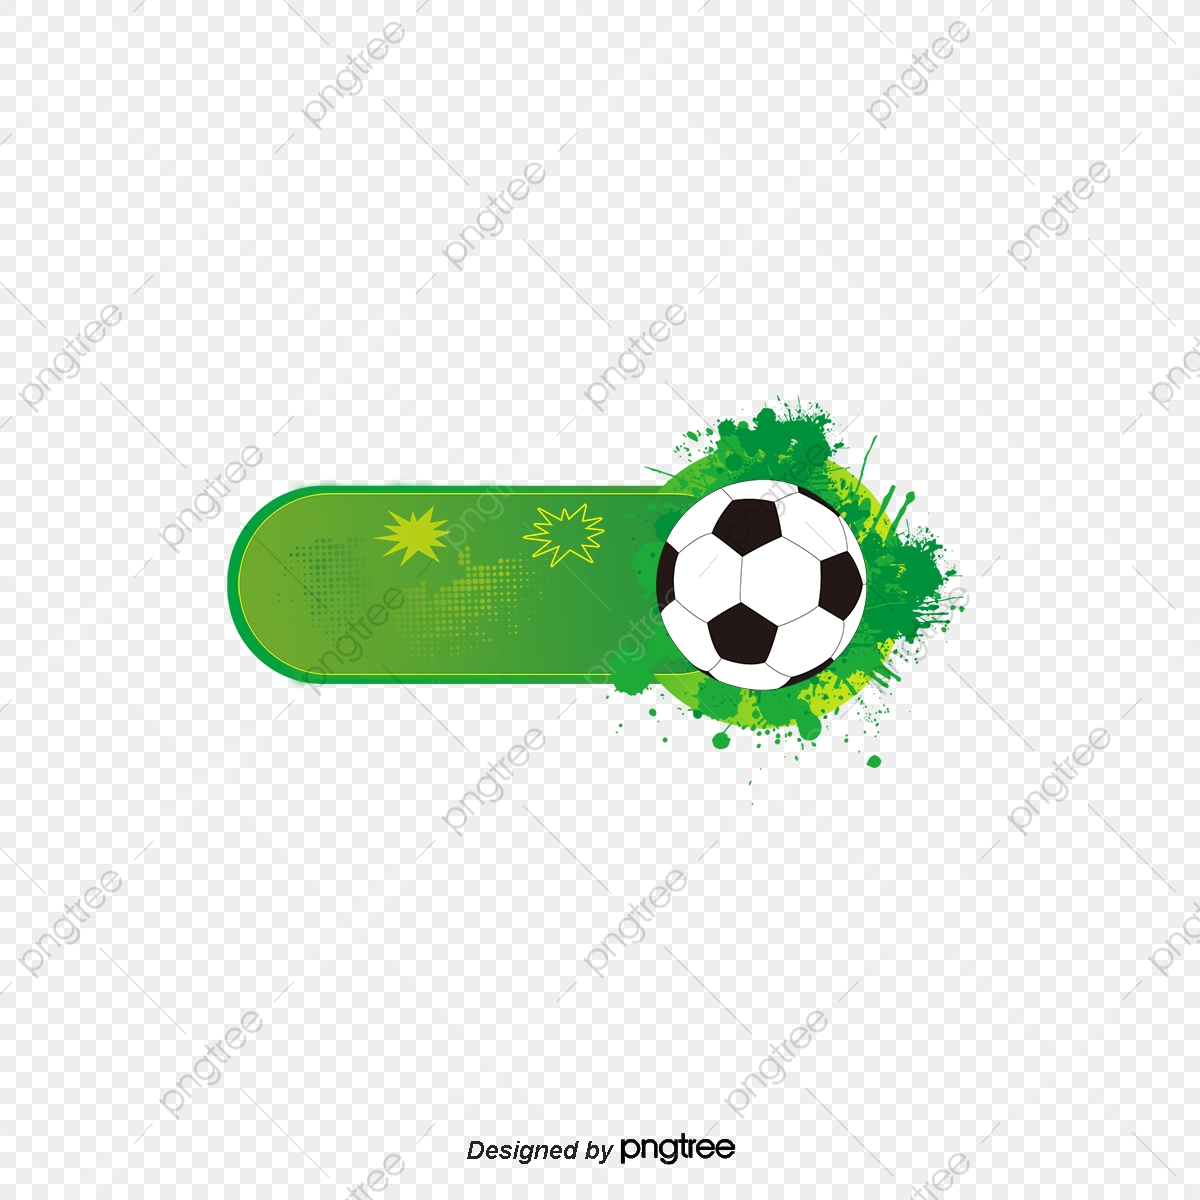 Cup Football Banner, Football Clipart, Cup, Football PNG and Vector.